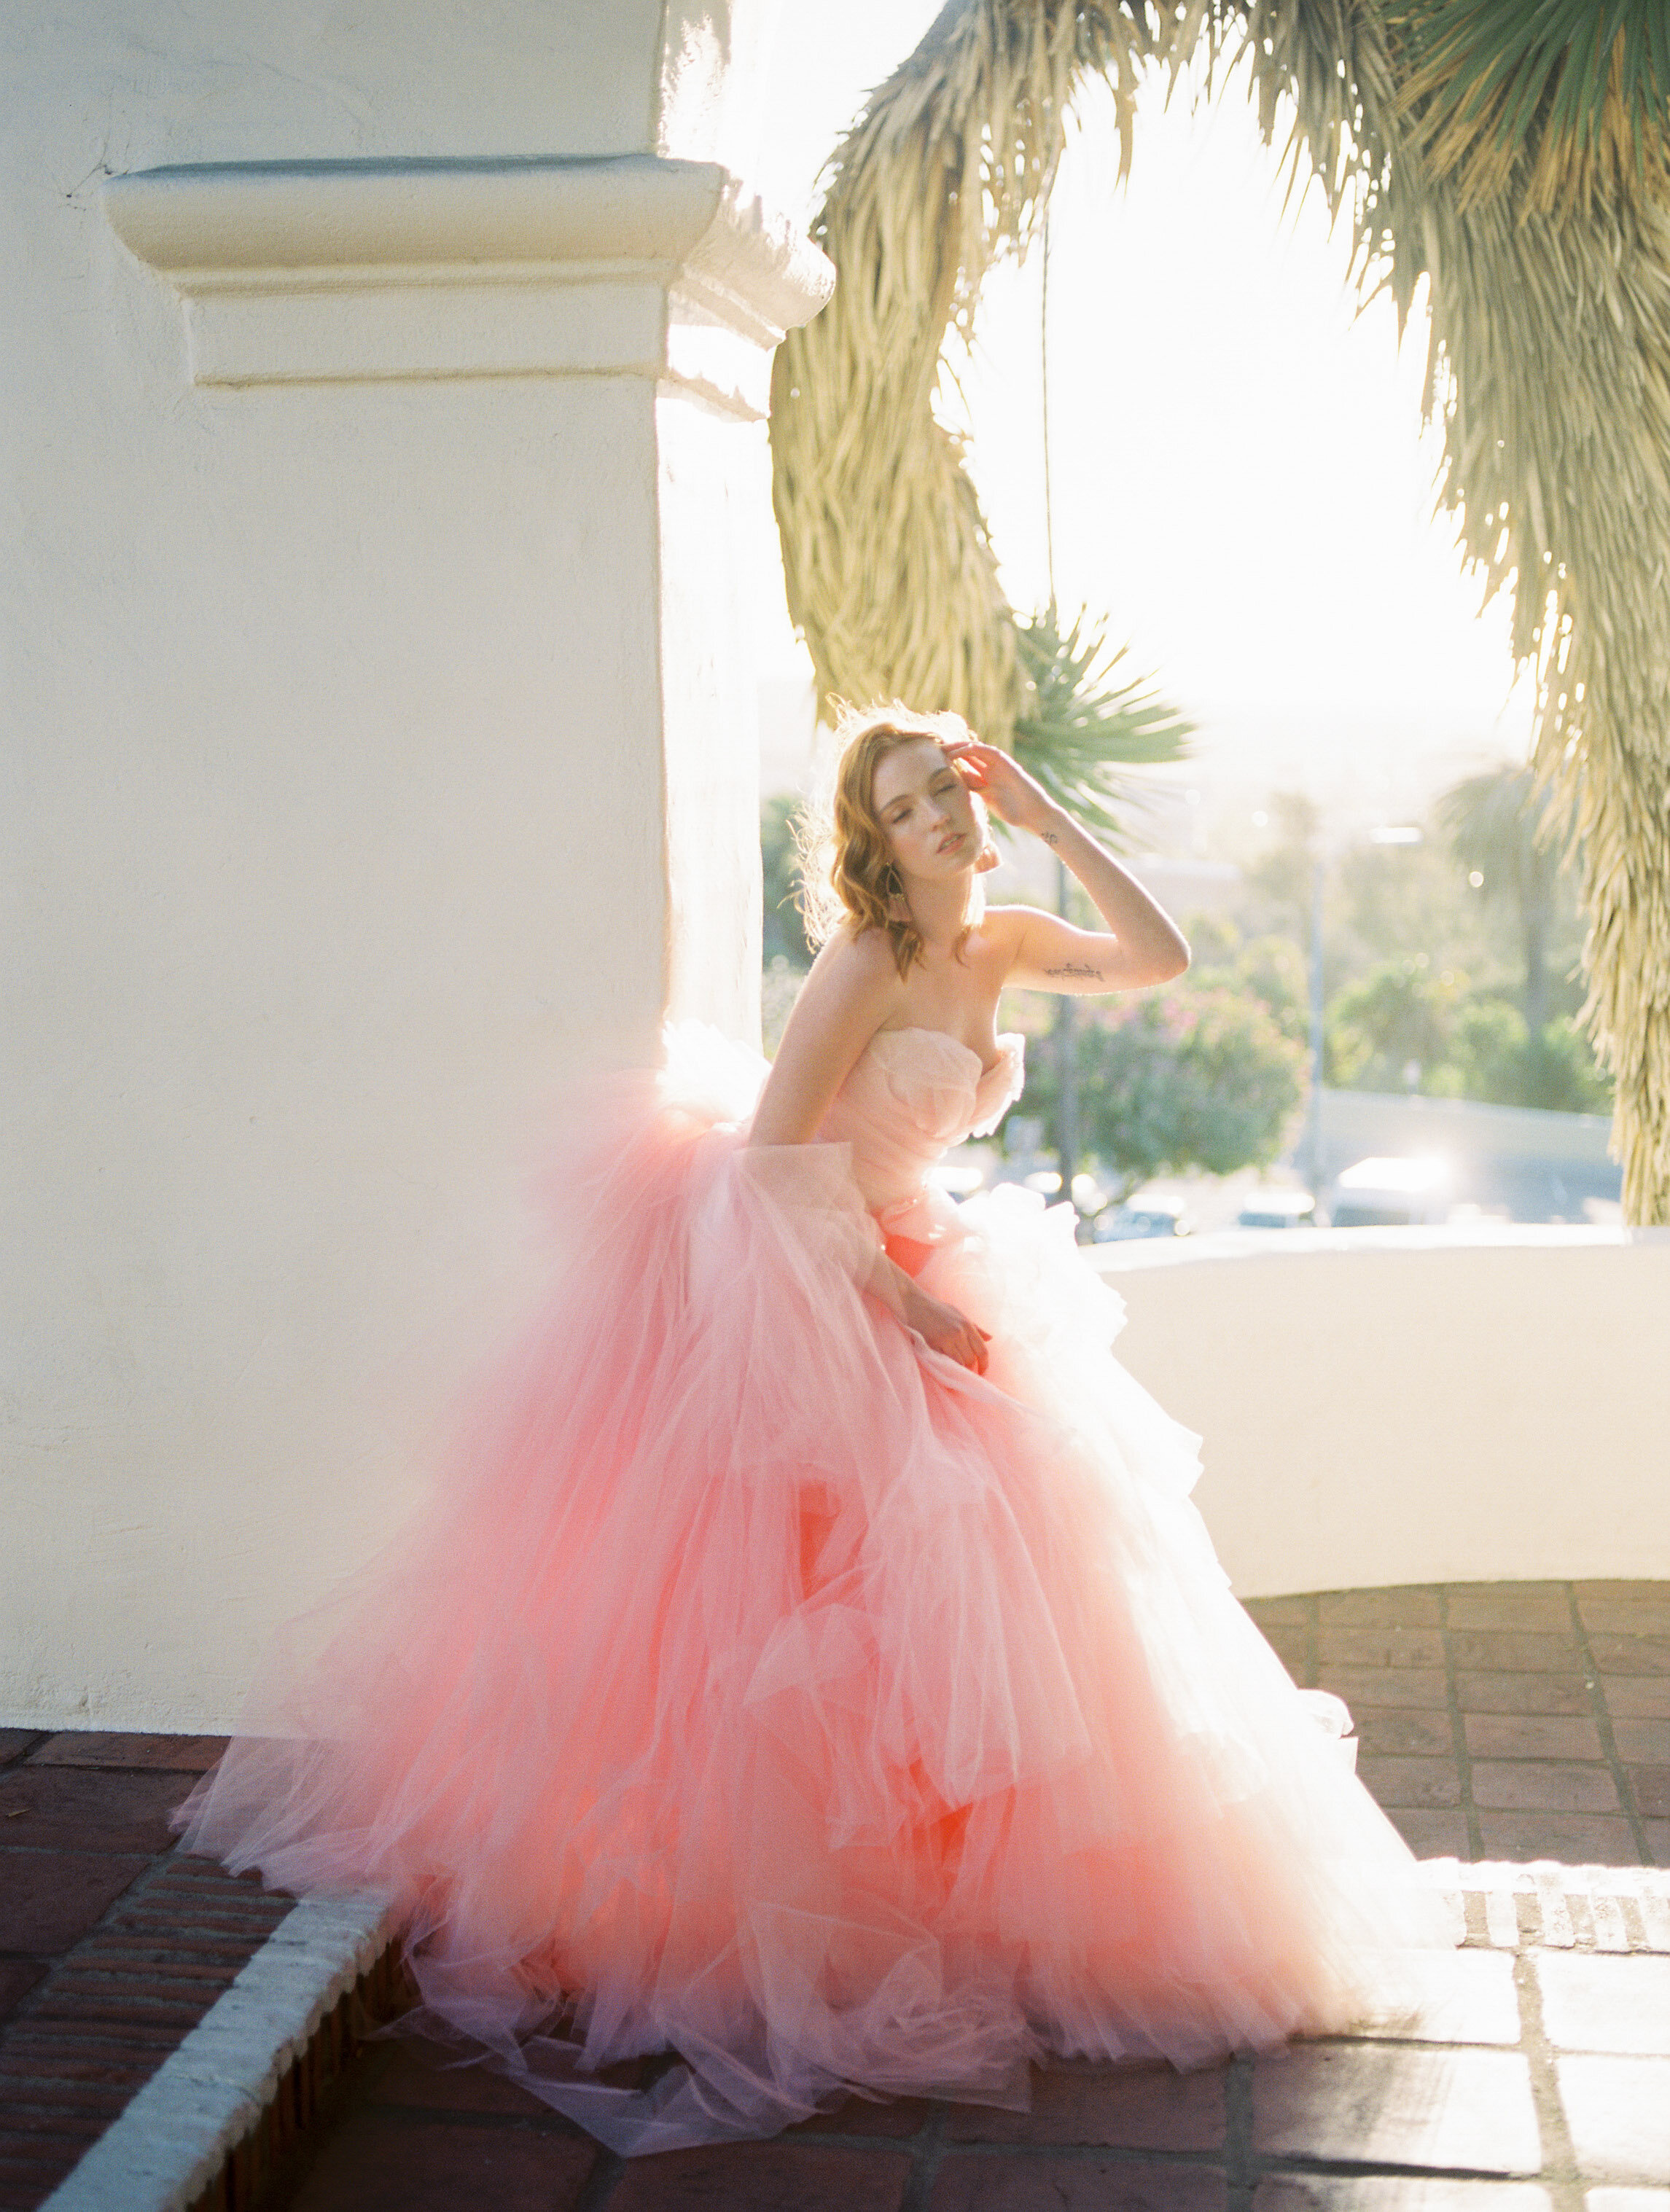 Colorful and elegant wedding editorial with stylish Alexandra Grecco dress at Junipero Serra Museum in San Diego, California by Liz Andolina Photography